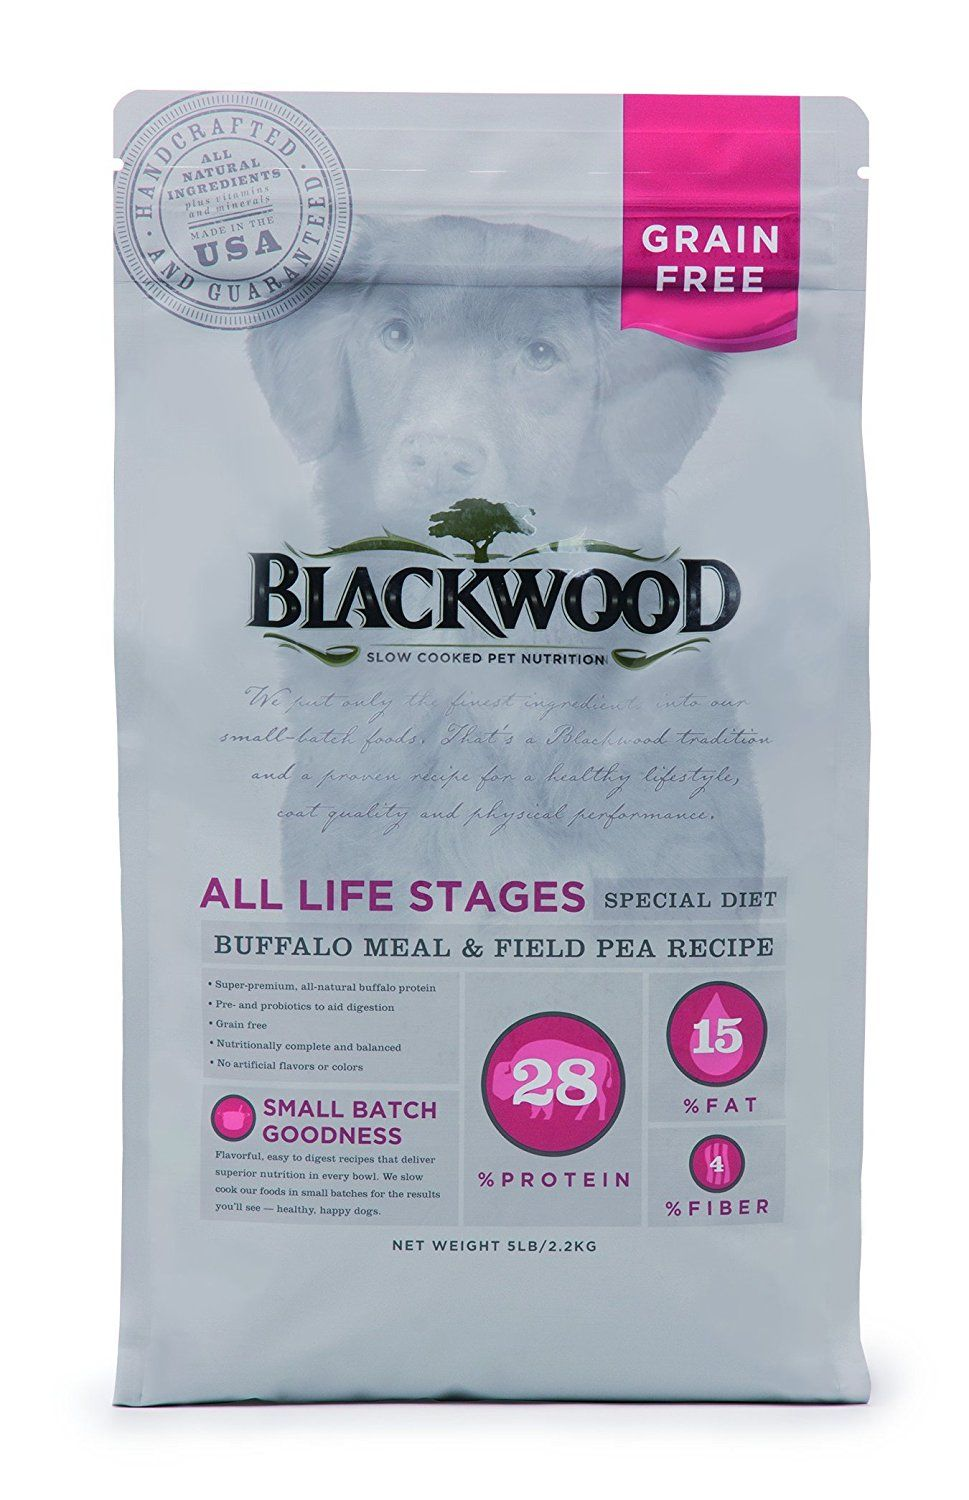 Blackwood all life stages special diet grain free